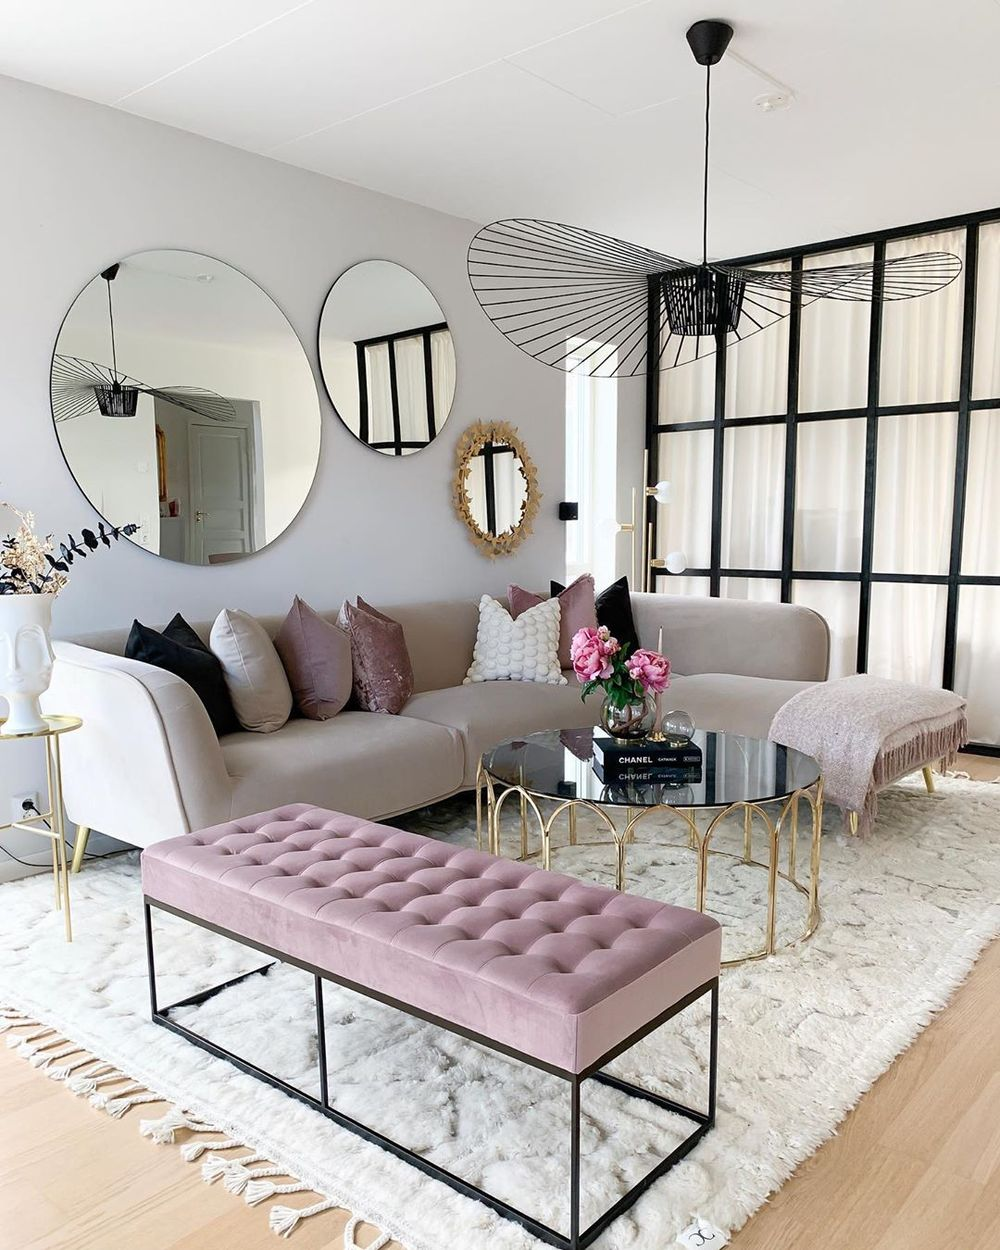 10 Ways to Get the Modern Glamorous Decor Look in Your Home